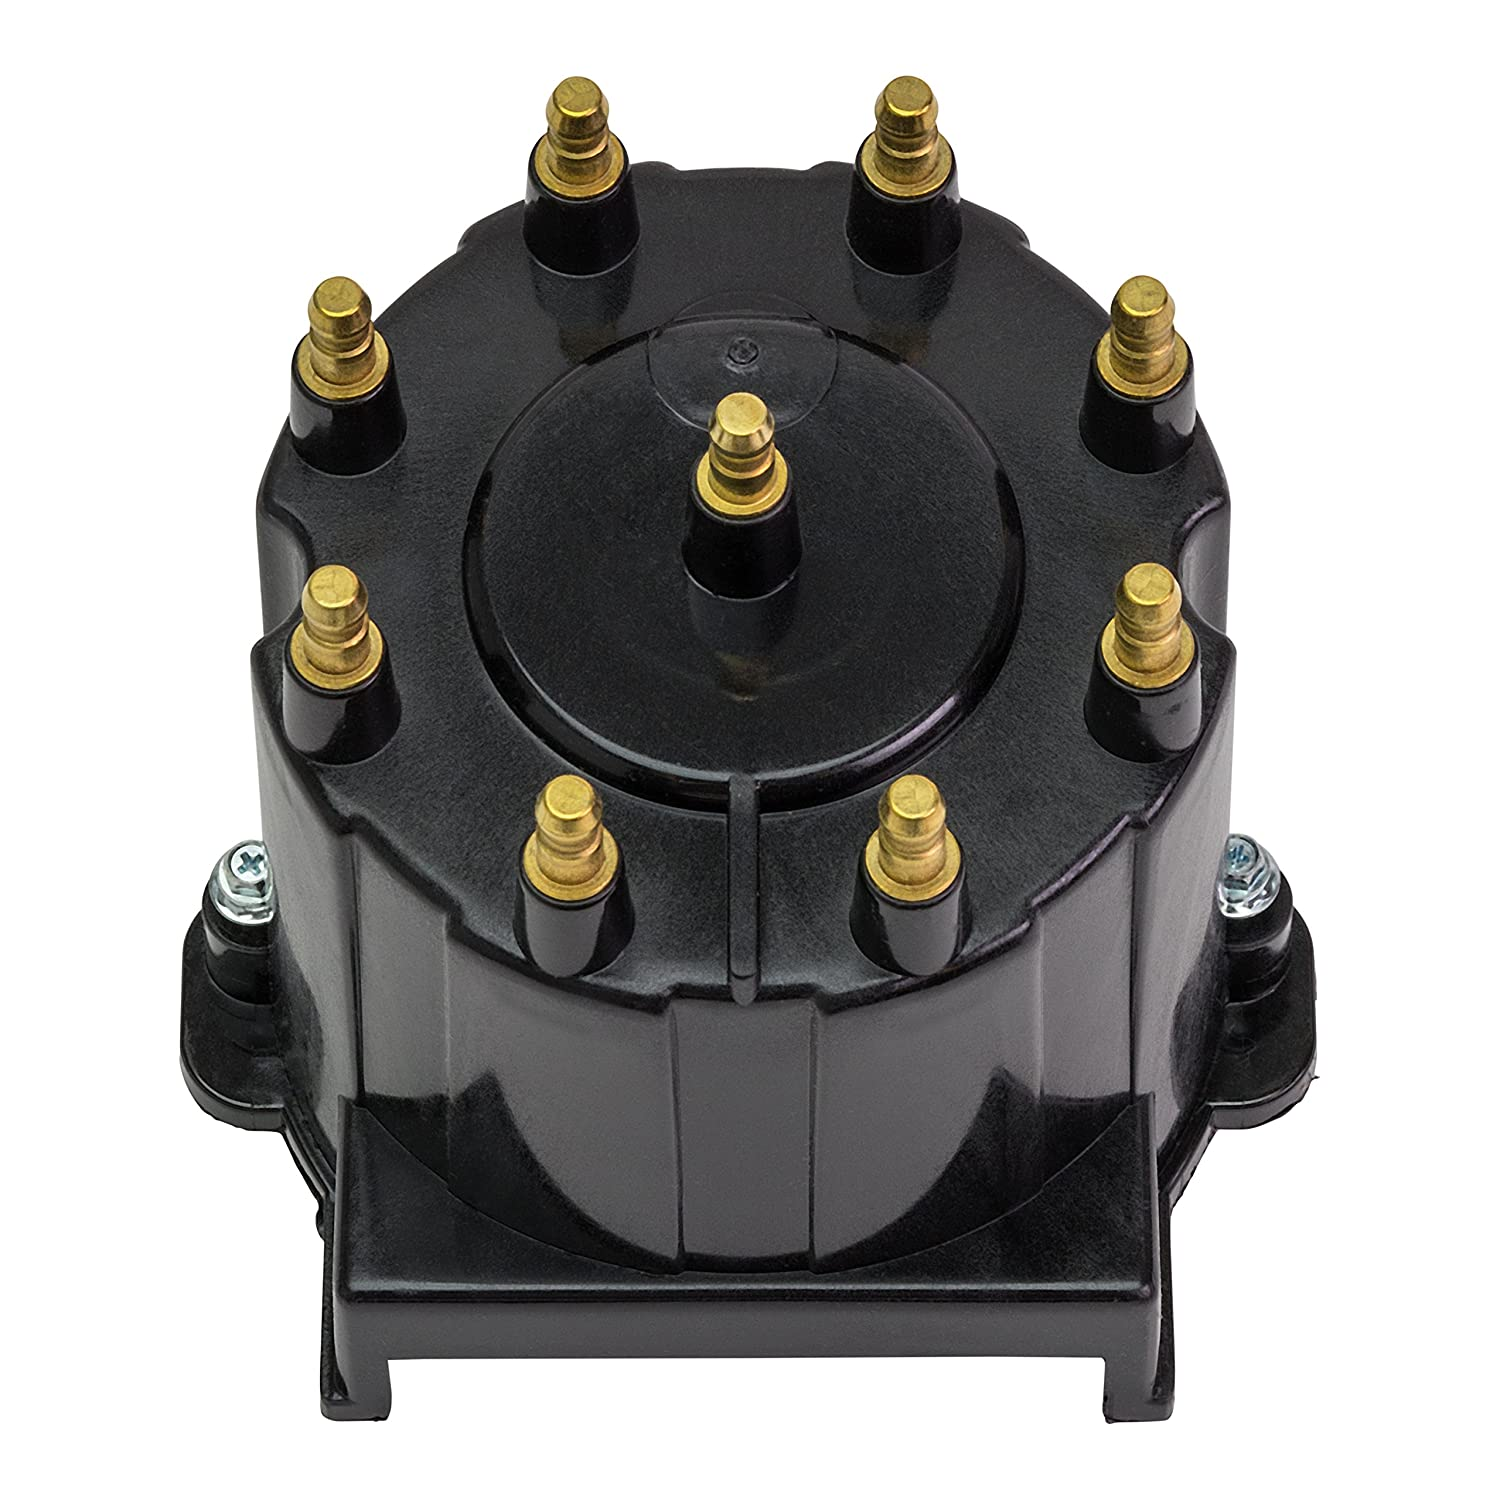 Except MPI Engines with ECM 555 Connections Quicksilver 808483T3 Distributor Cap Kit Marinized V-8 Engines by General Motors with Delco HEI Ignition Systems